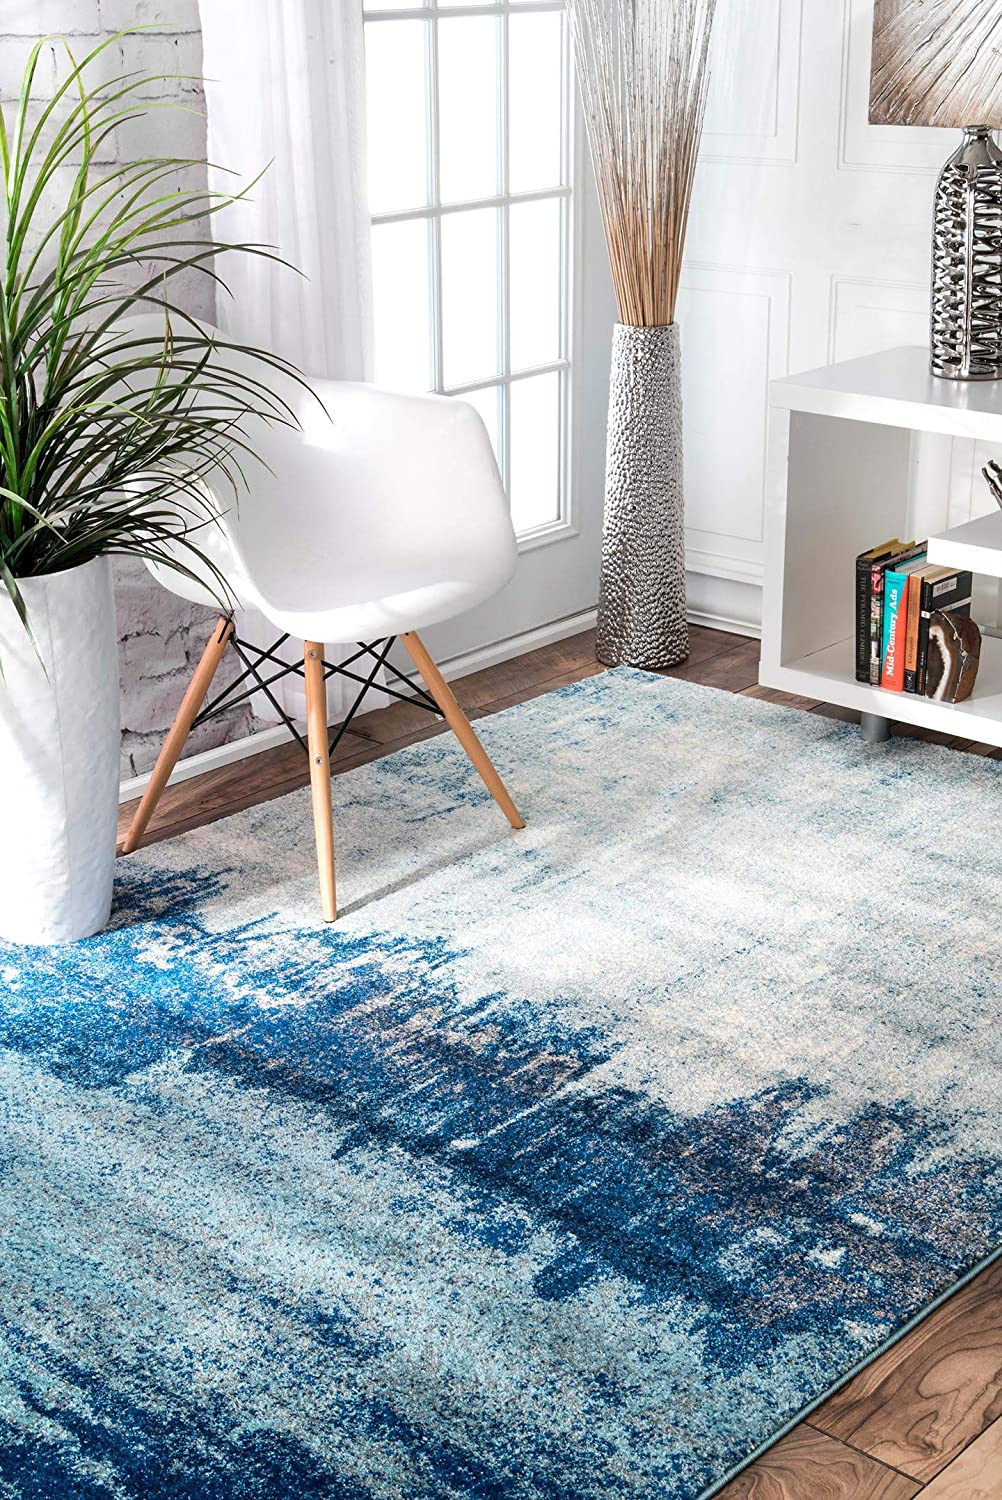 nuLOOM Alayna Import Abstract Ranking TOP10 Area Round Rug Blue 5'